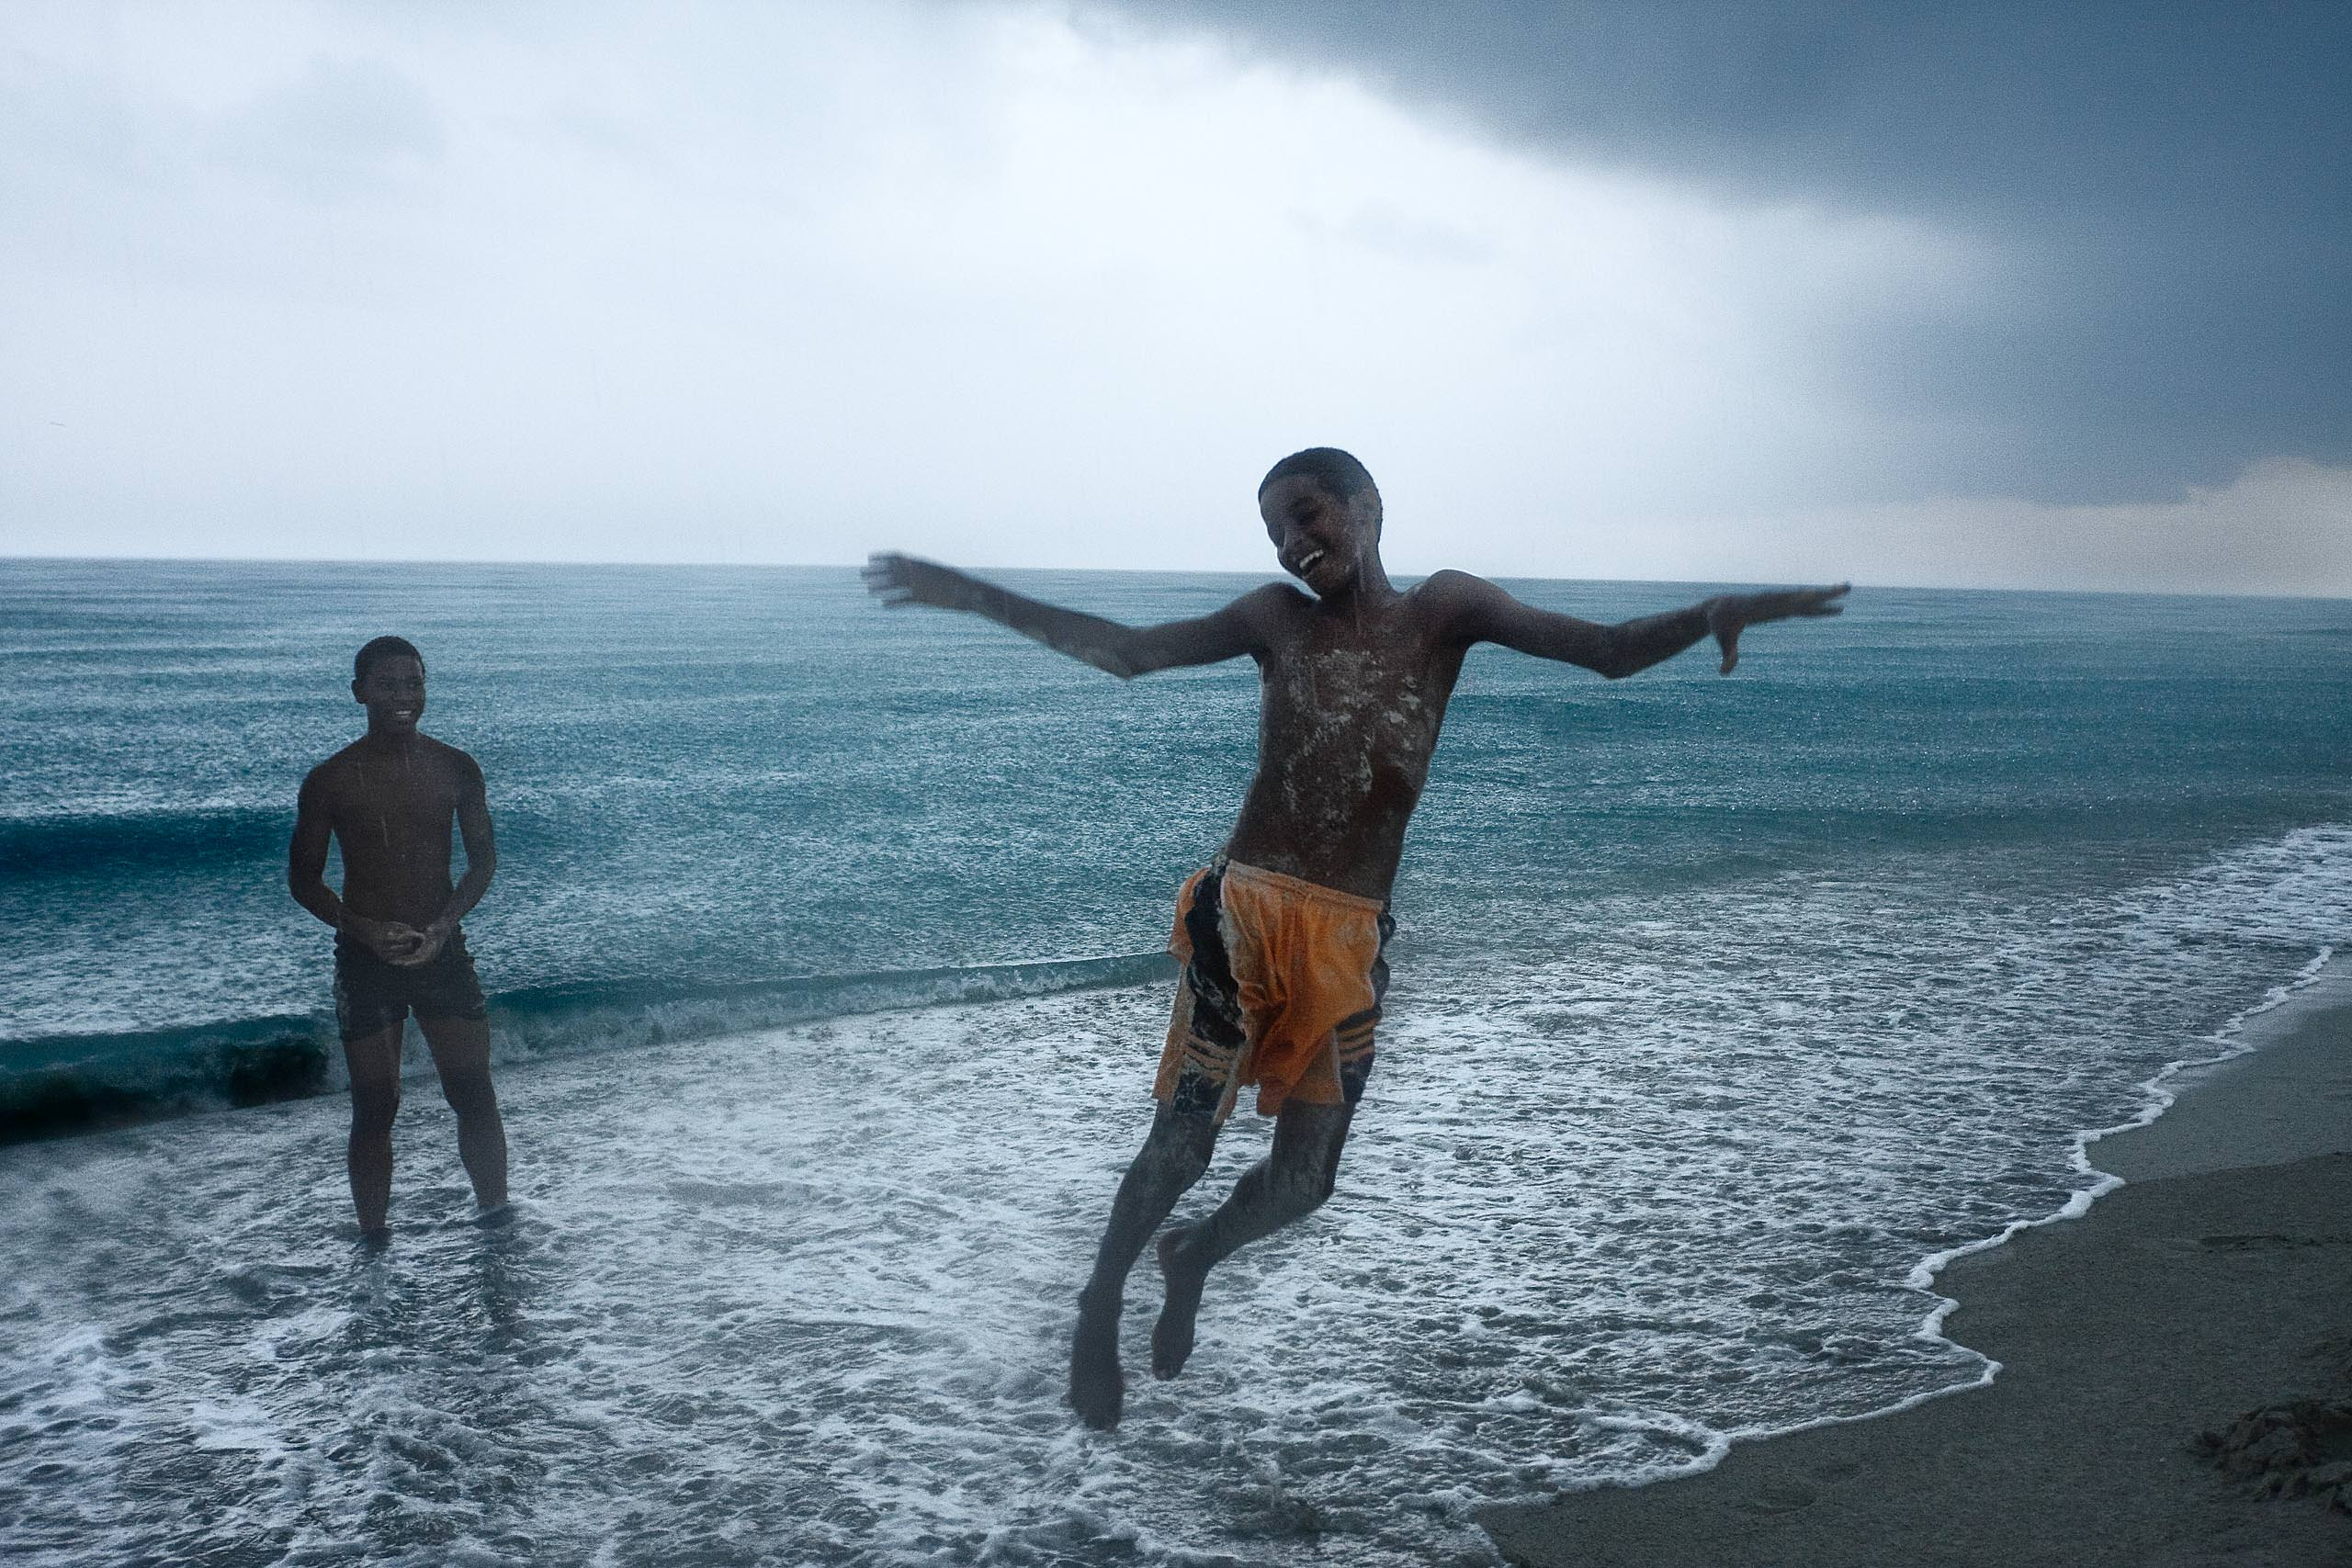 Cuba, Playing under a Storm, 2009